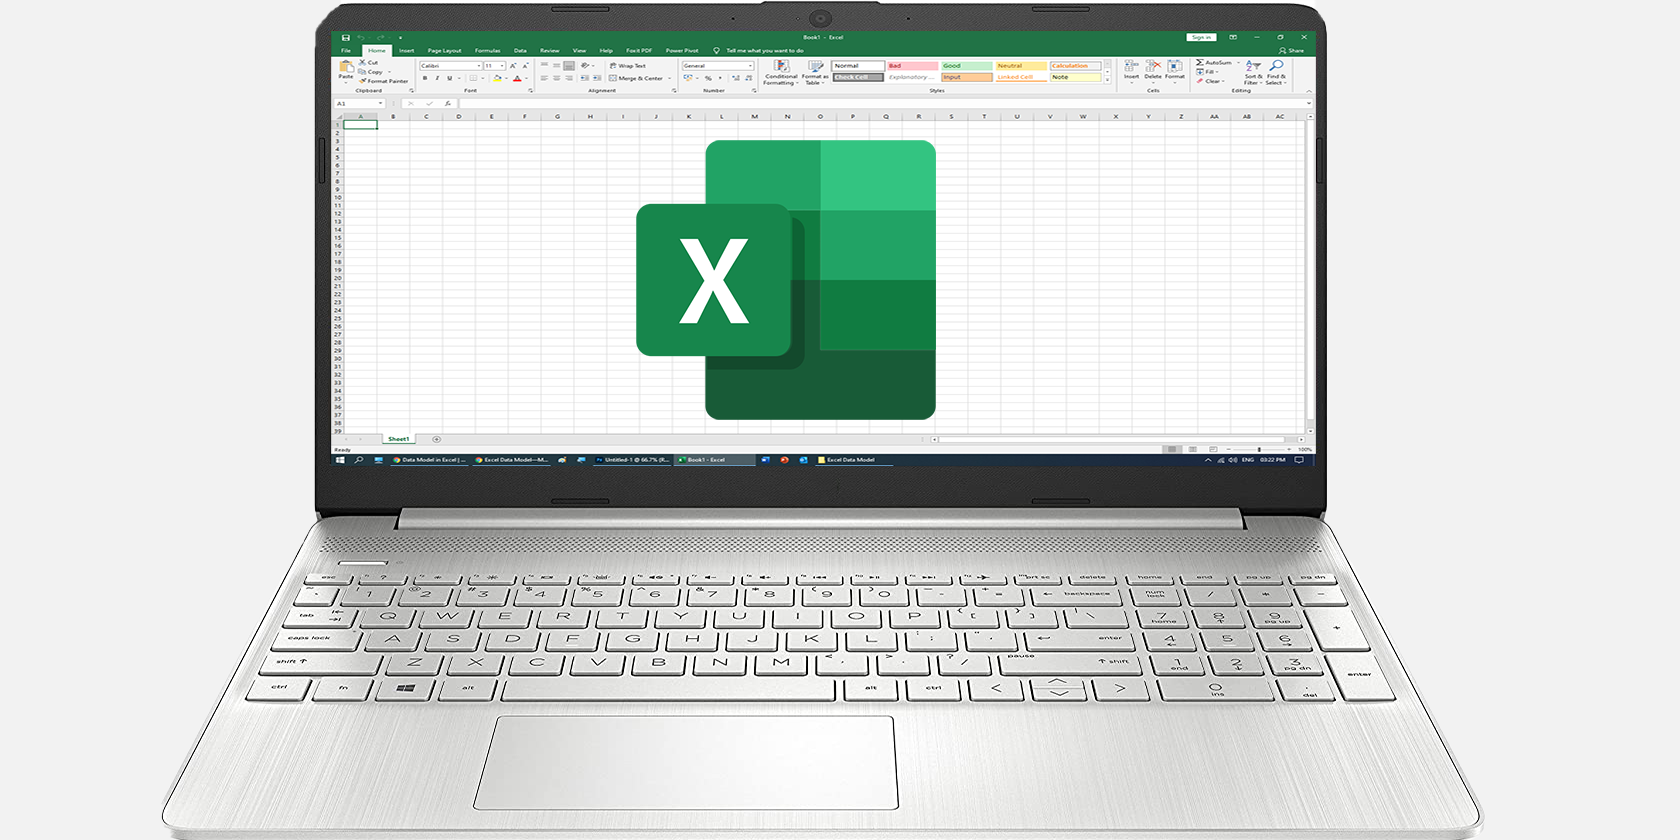 How to Create Relationships Between Multiple Tables in Excel